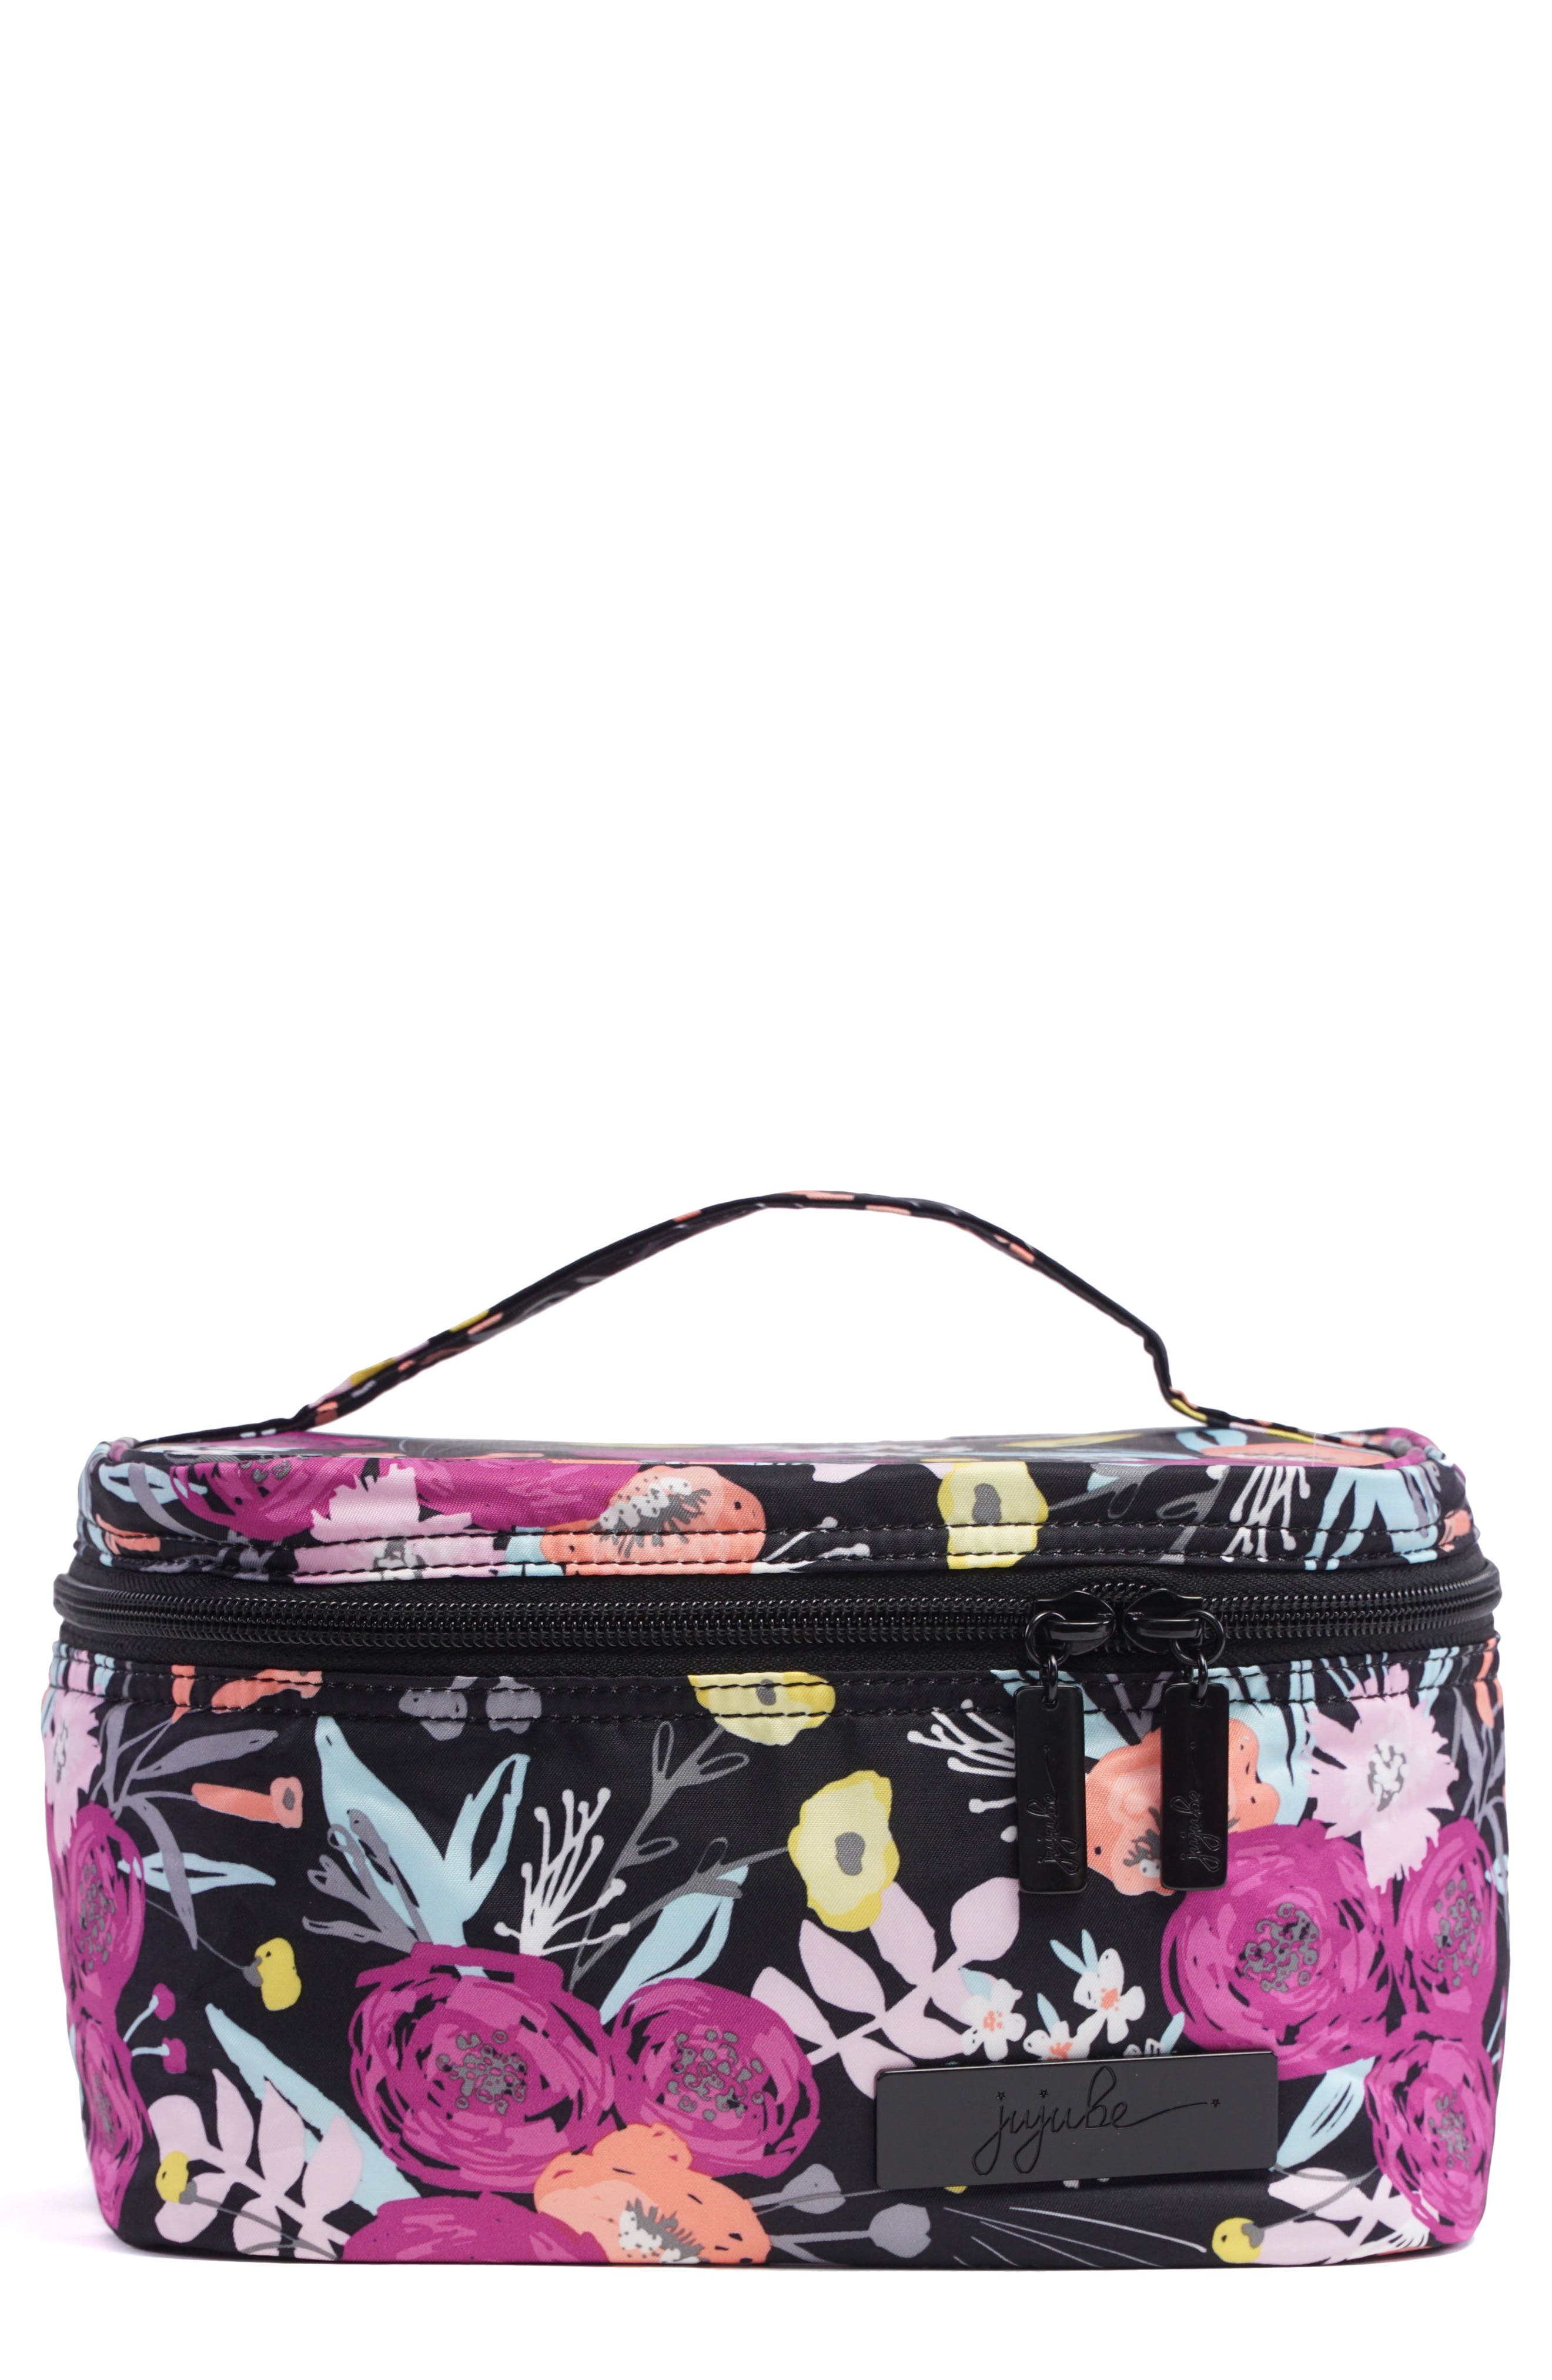 Onyx Be Ready Cosmetics Travel Case,                         Main,                         color, 510